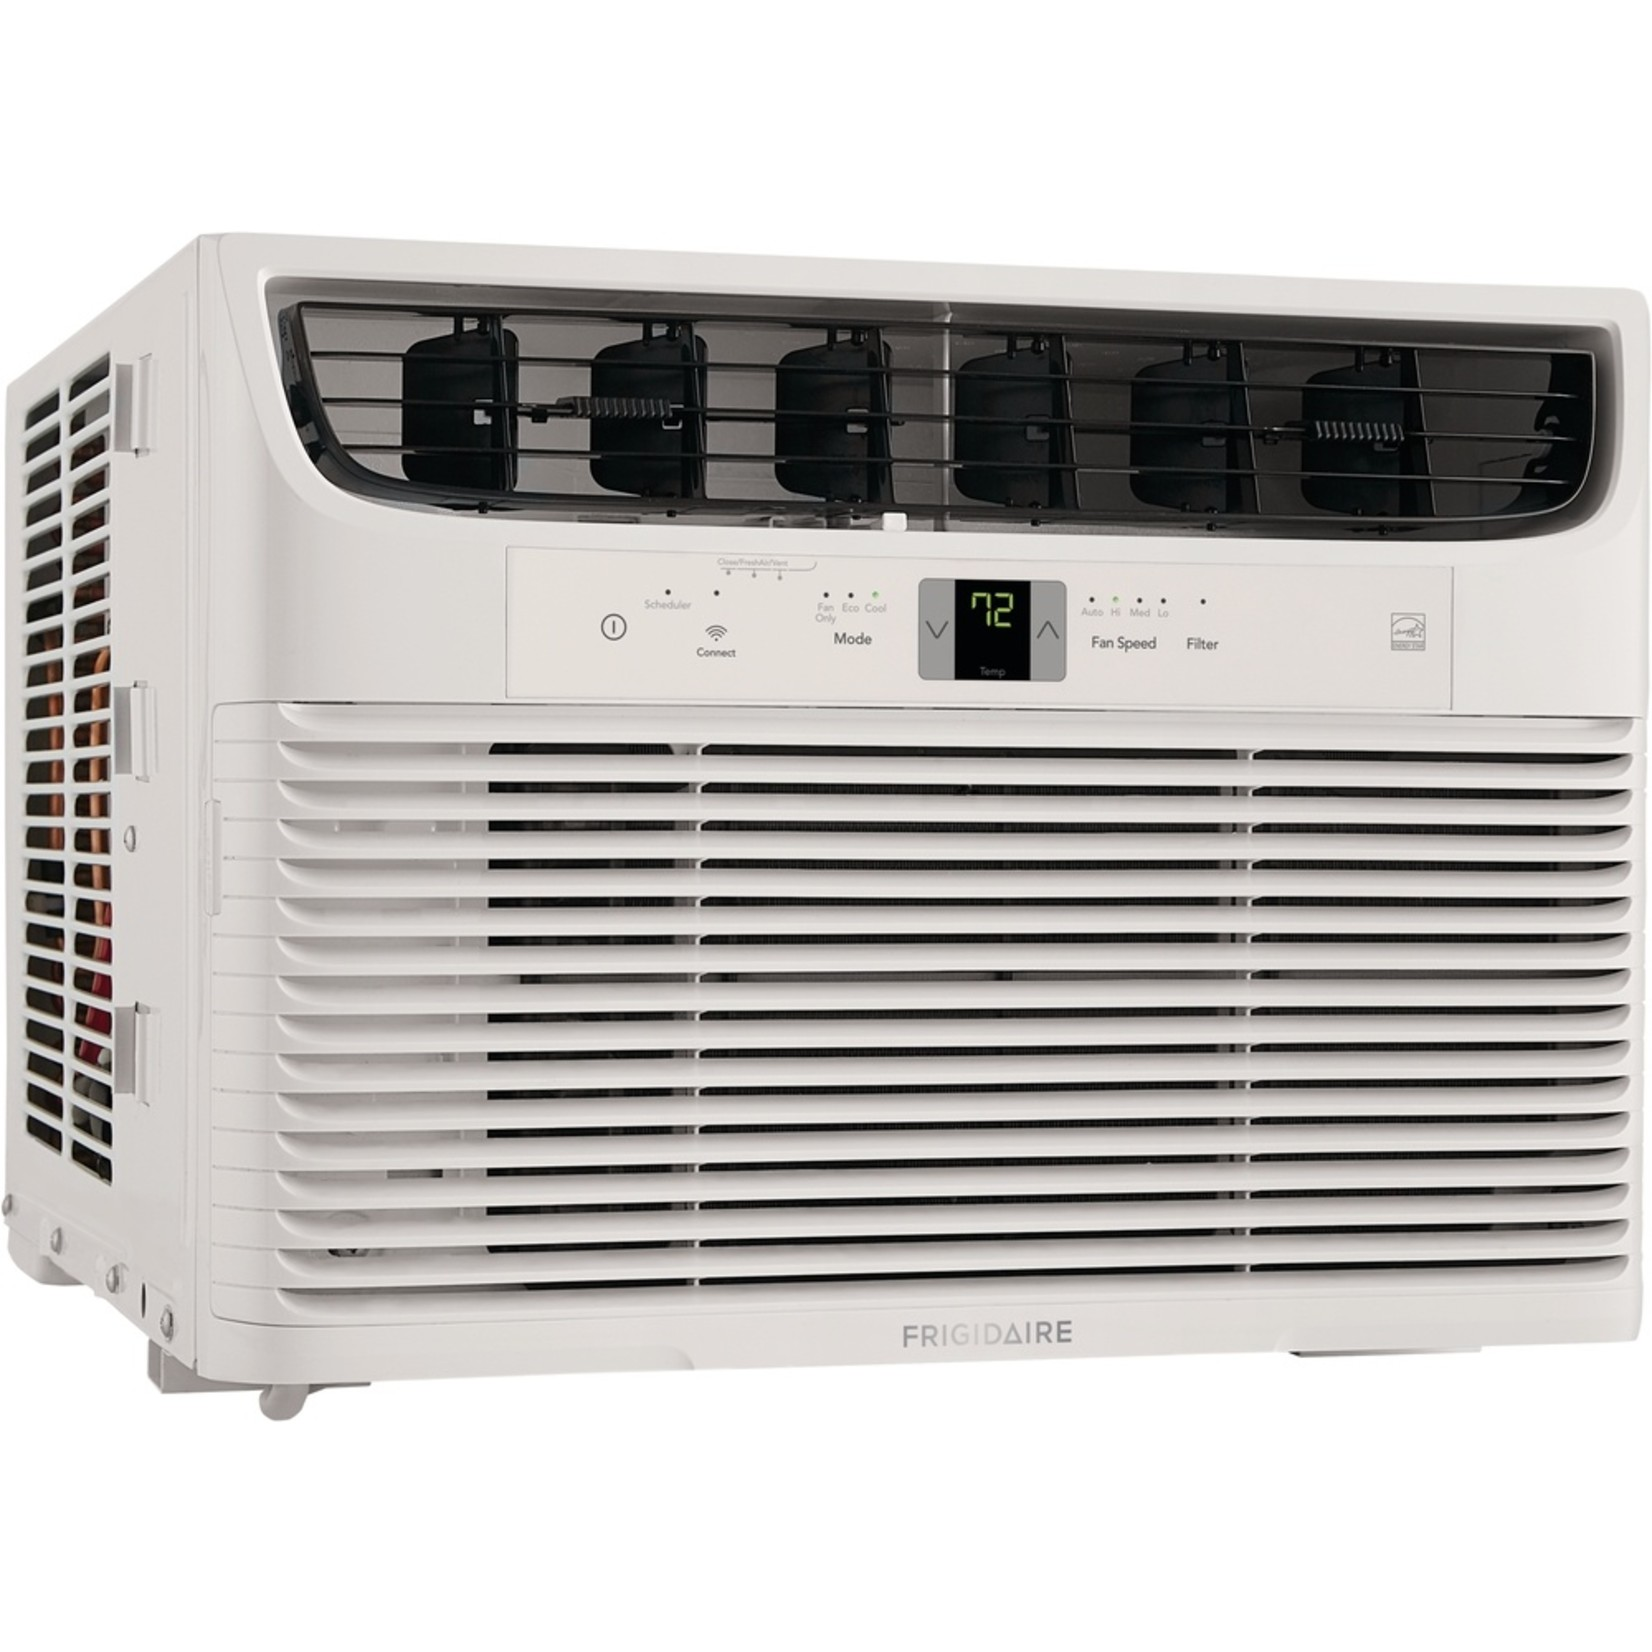 *Frigidaire 10,000 BTU Energy Star Window Air Conditioner with Remote and WiFi Control